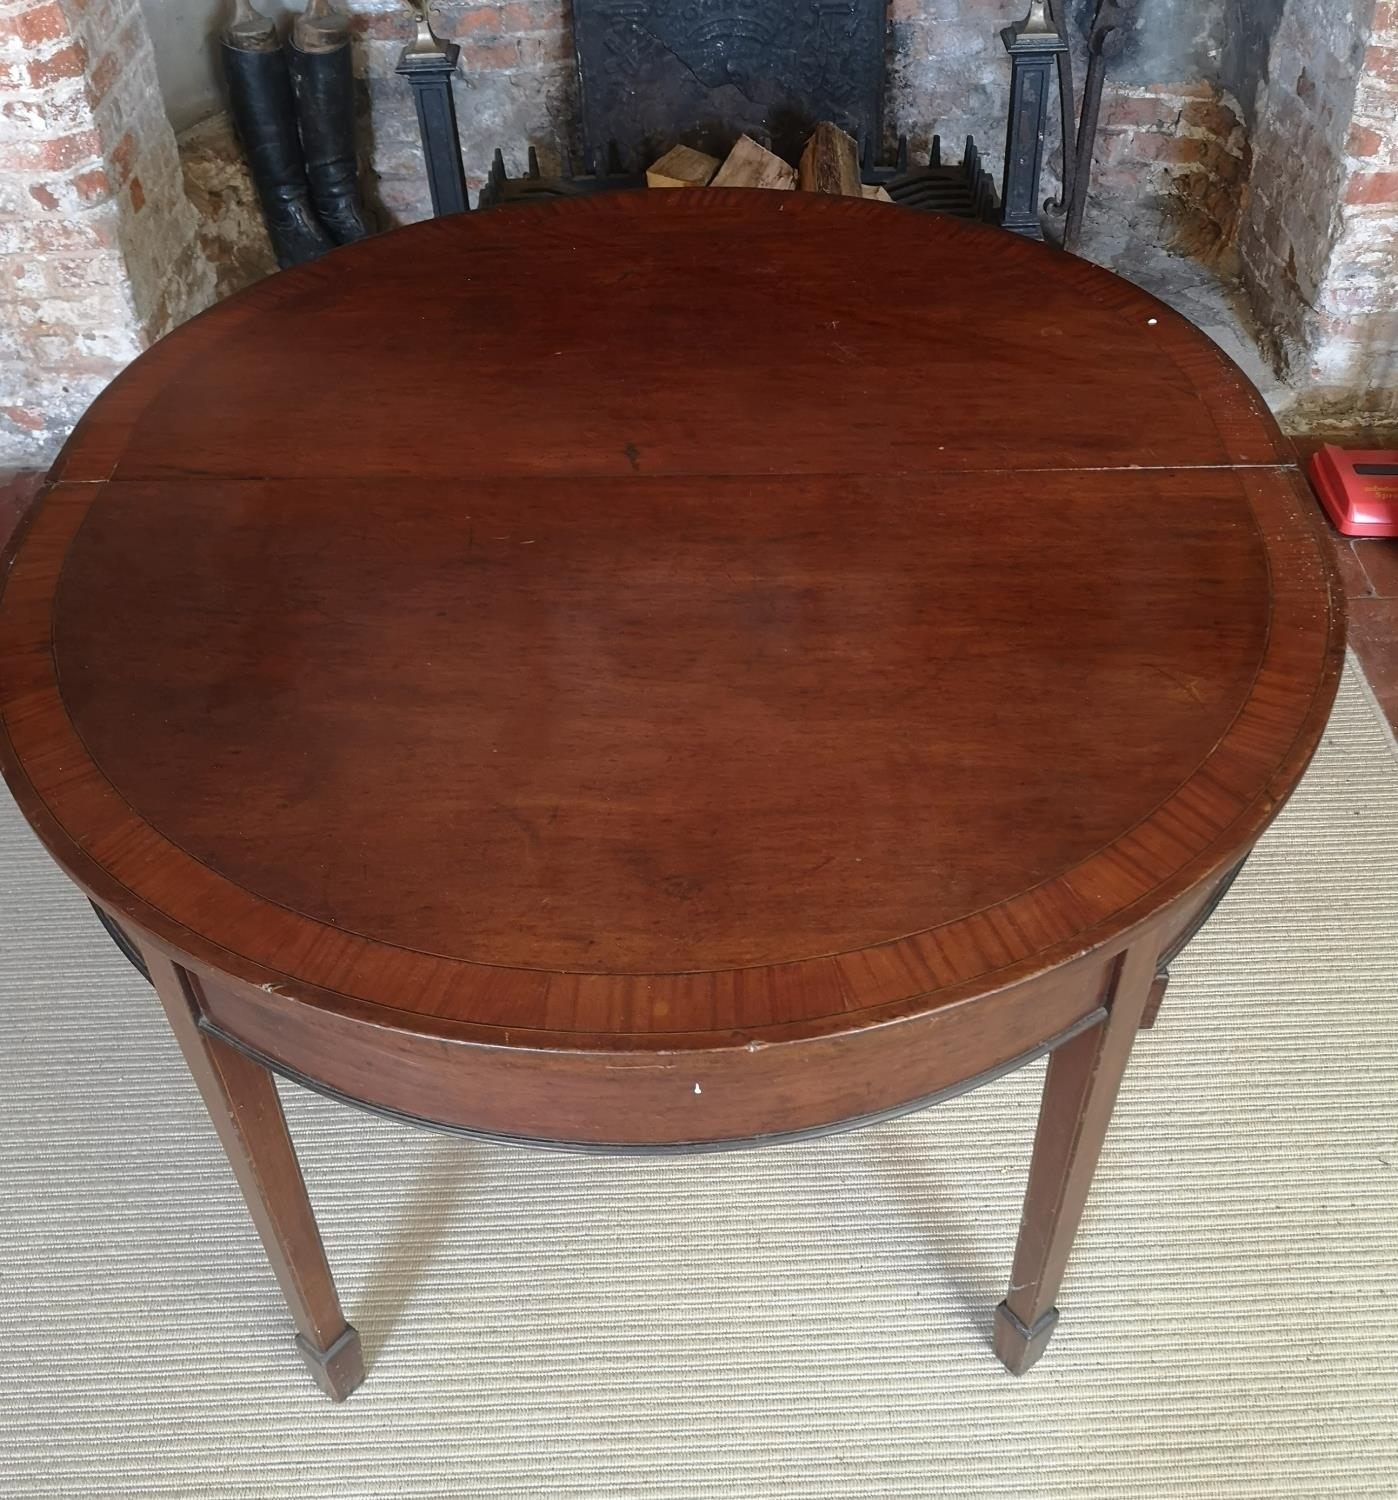 A 19TH CENTURY MAHOGANY AND CROSSBANDED 'D' END DINING TABLE With one extra leaf, raised on square - Image 2 of 4